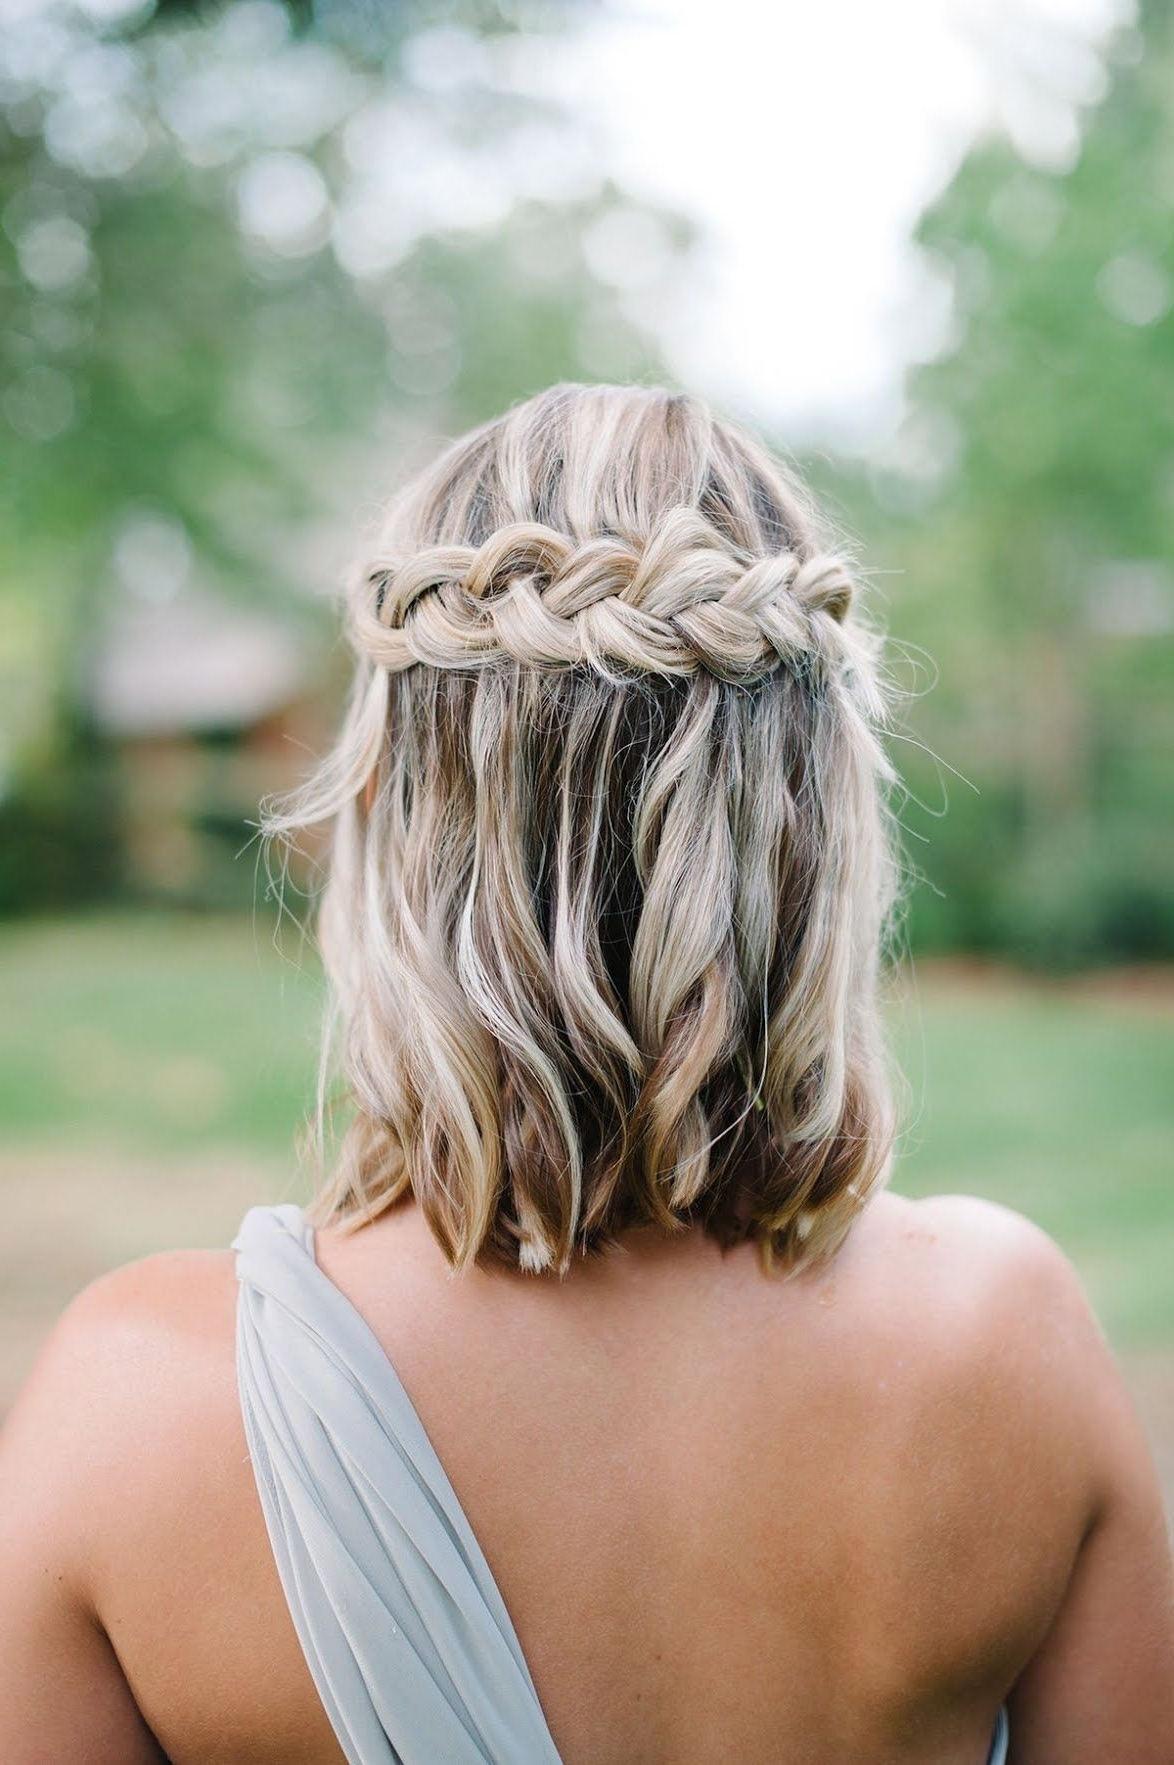 Simple Wedding Hairstyles Best Photos – Wedding Hairstyles With Fashionable Elegant Wedding Hairstyles For Bridesmaids (View 11 of 15)